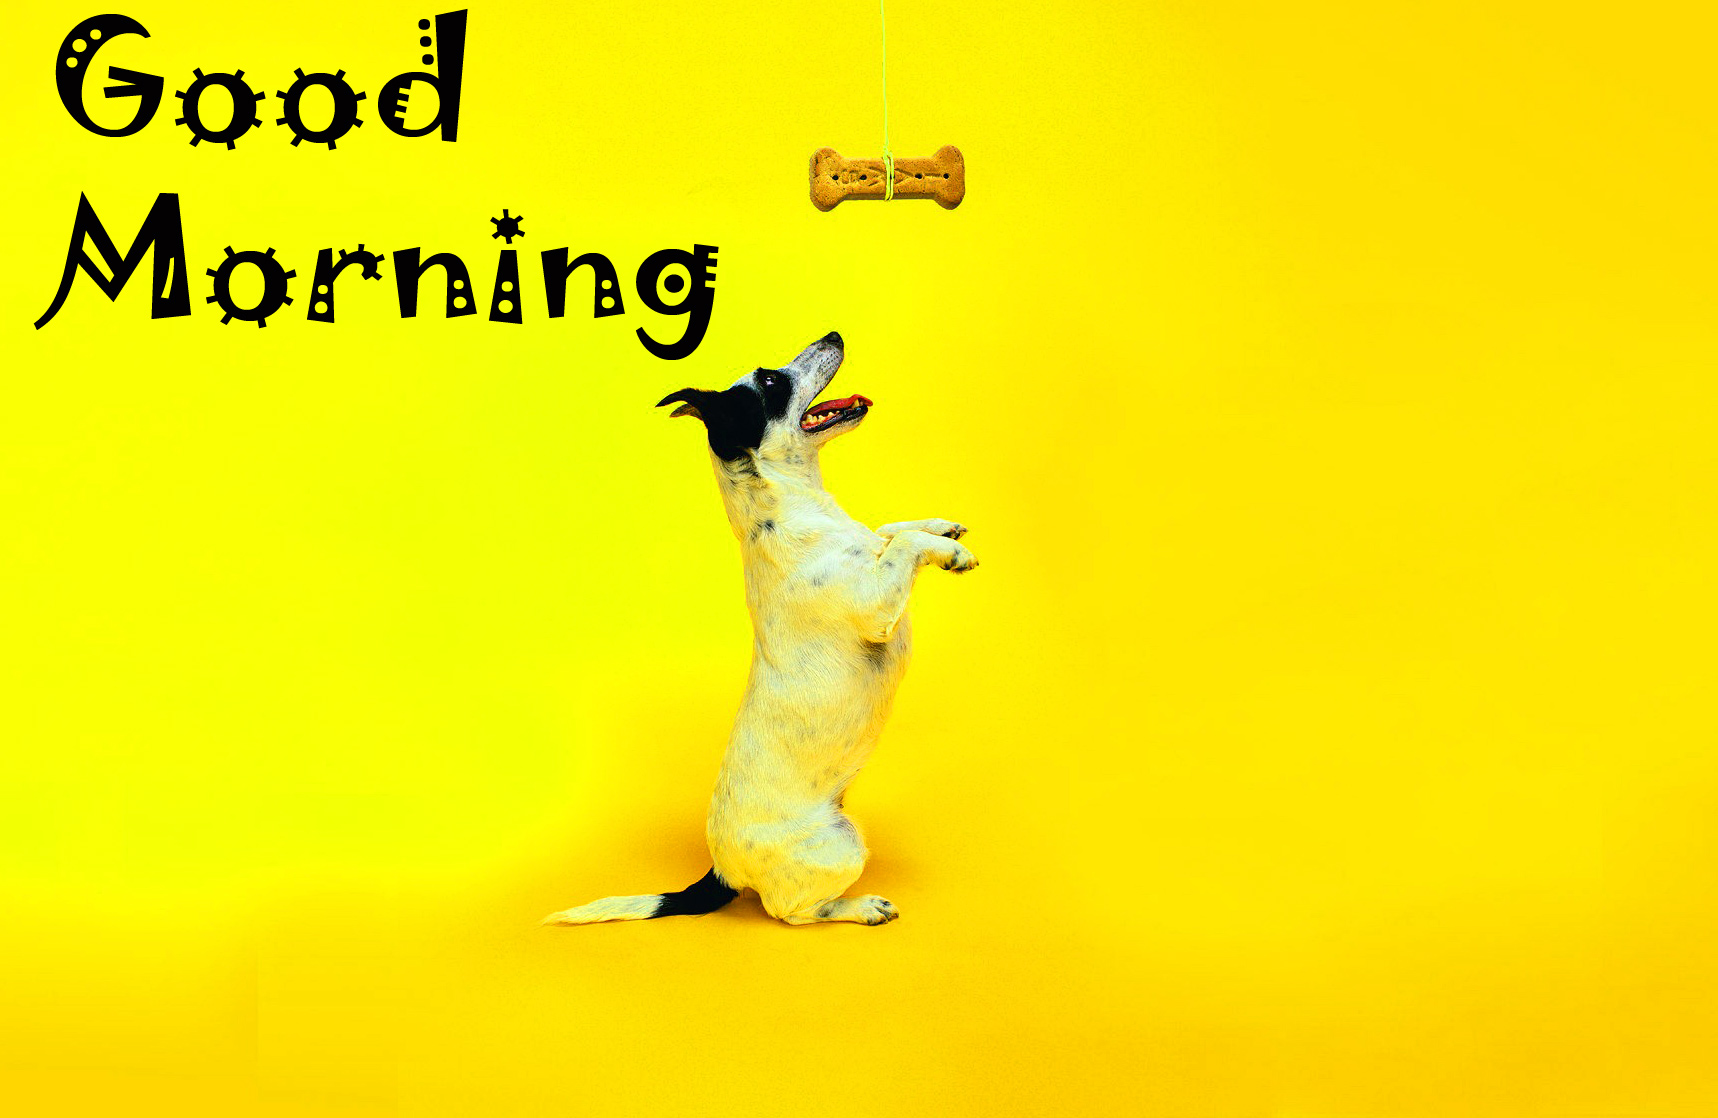 Good Morning Images Wallpaper Photo HD Download